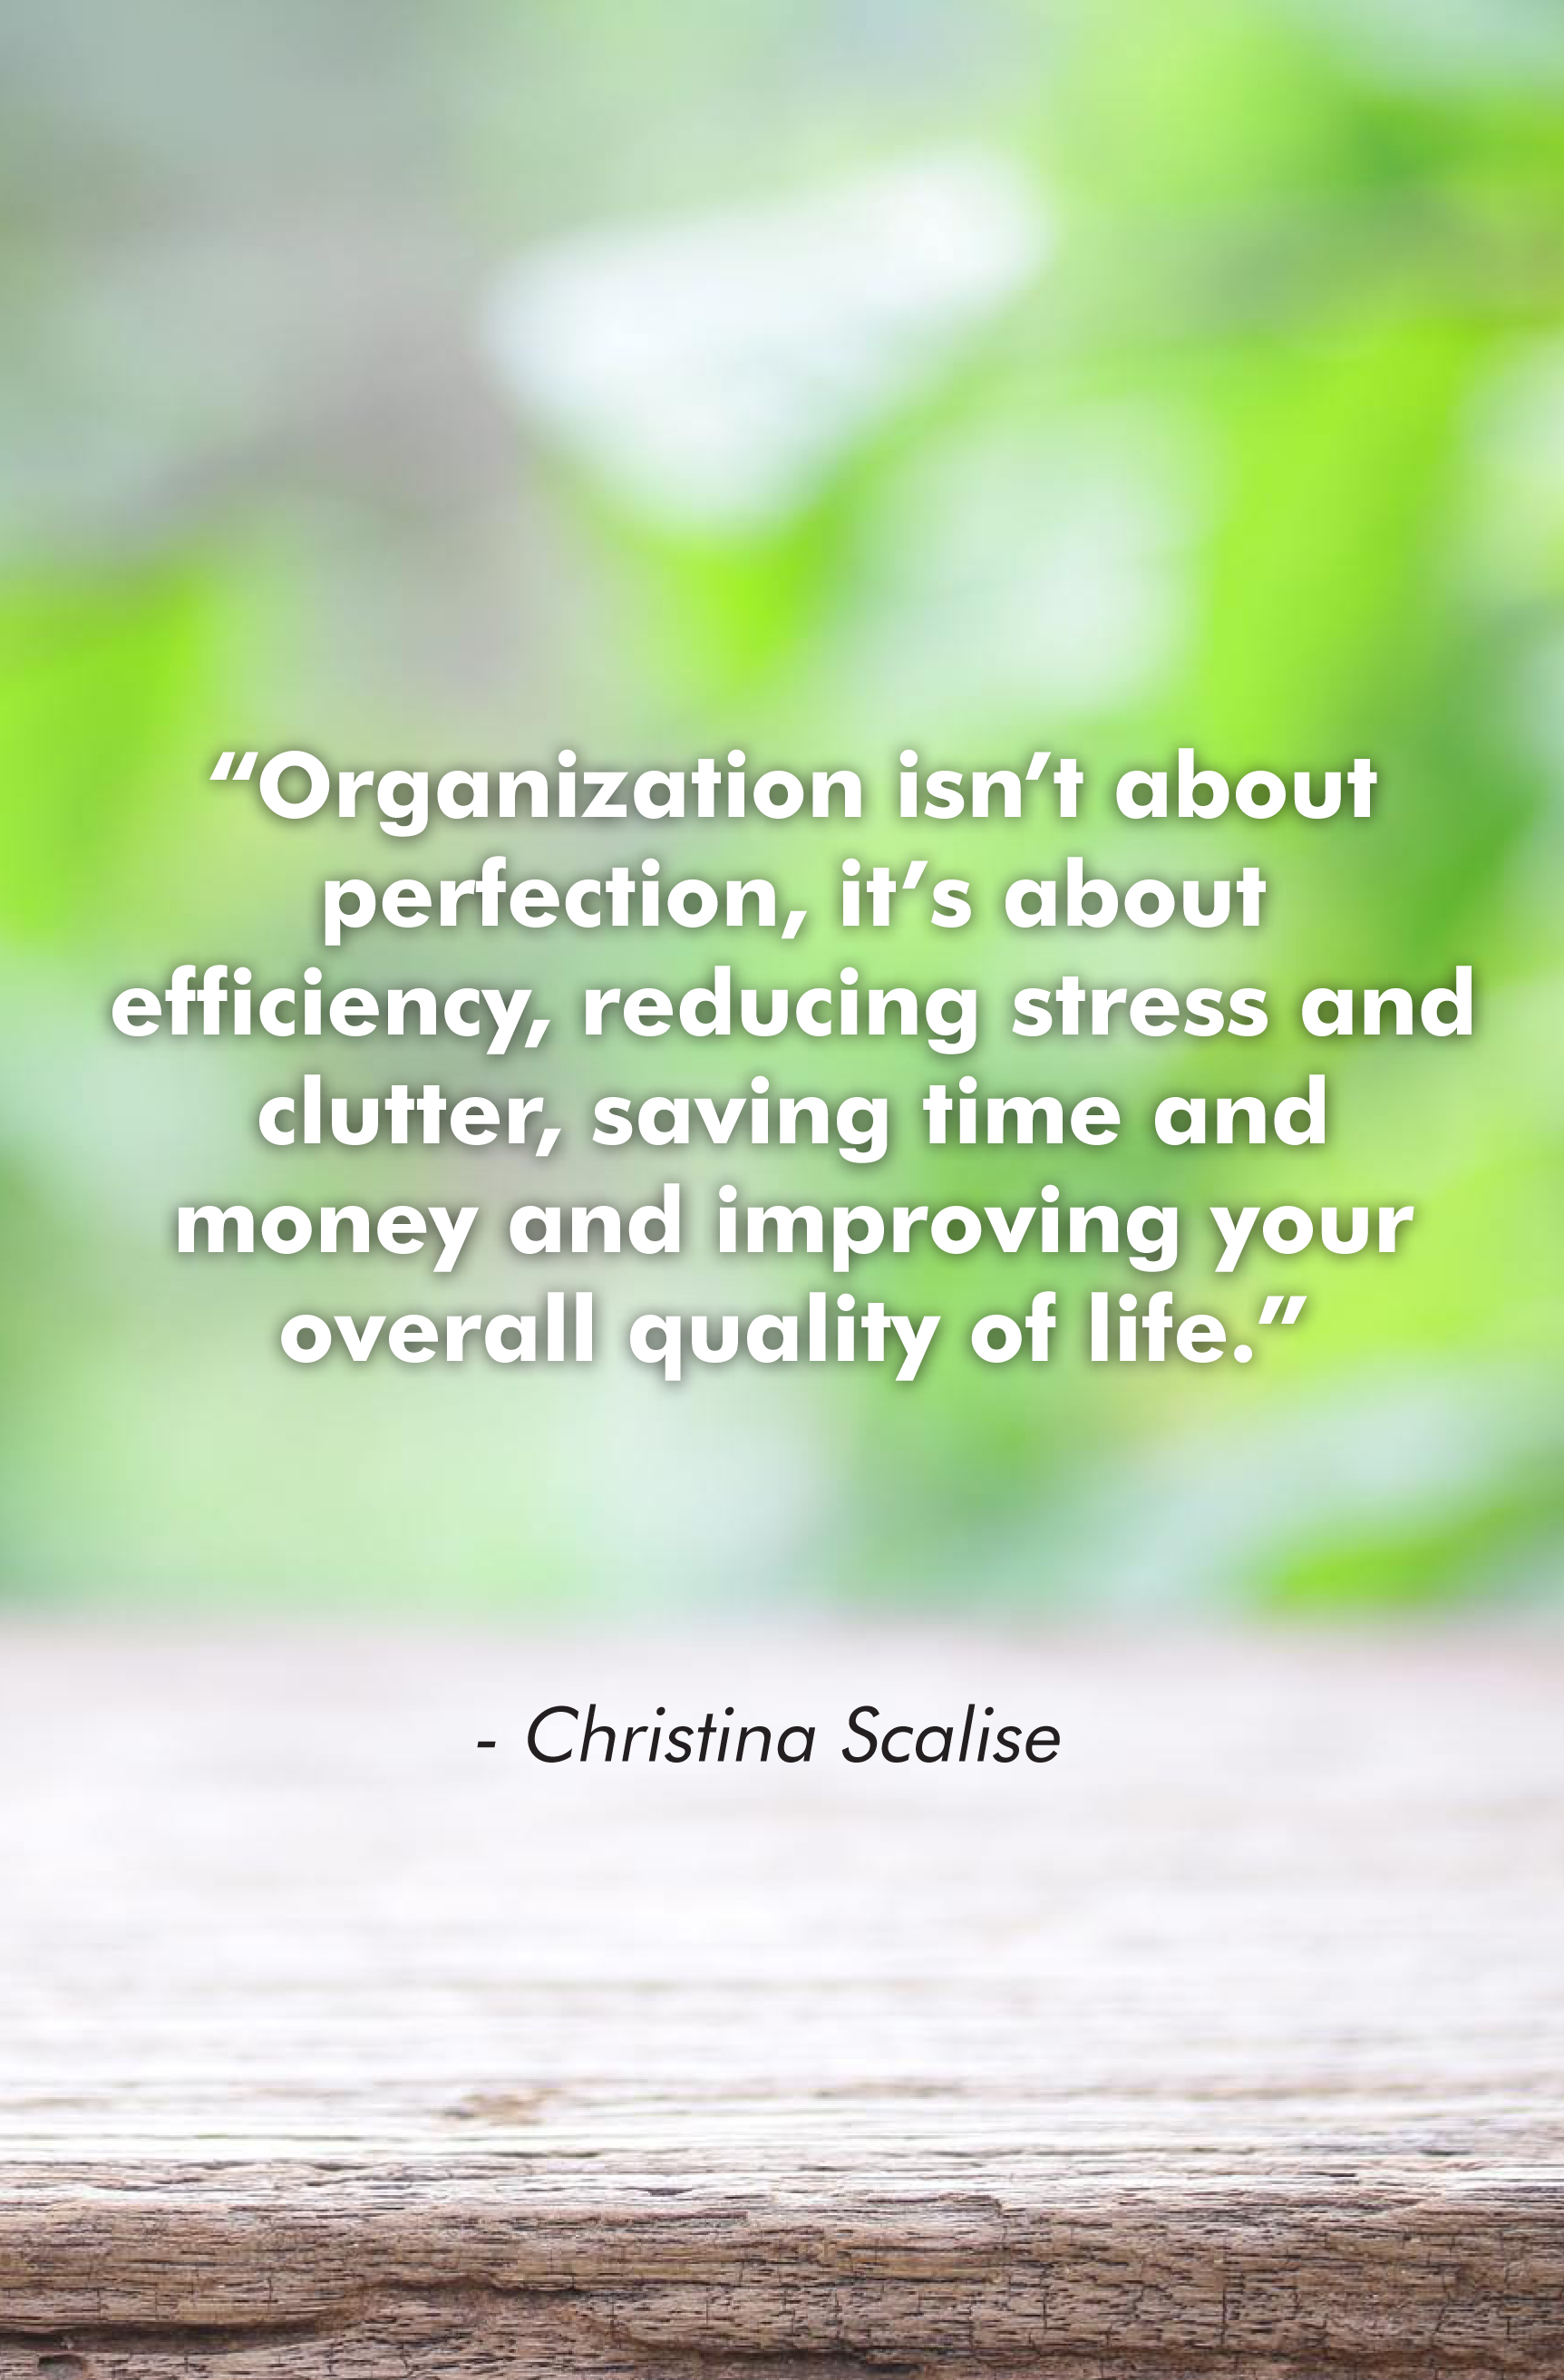 """""""Organization isn't about perfection, it's about efficiency, reducing stress and clutter, saving time and money and improving your overall quality of life."""""""